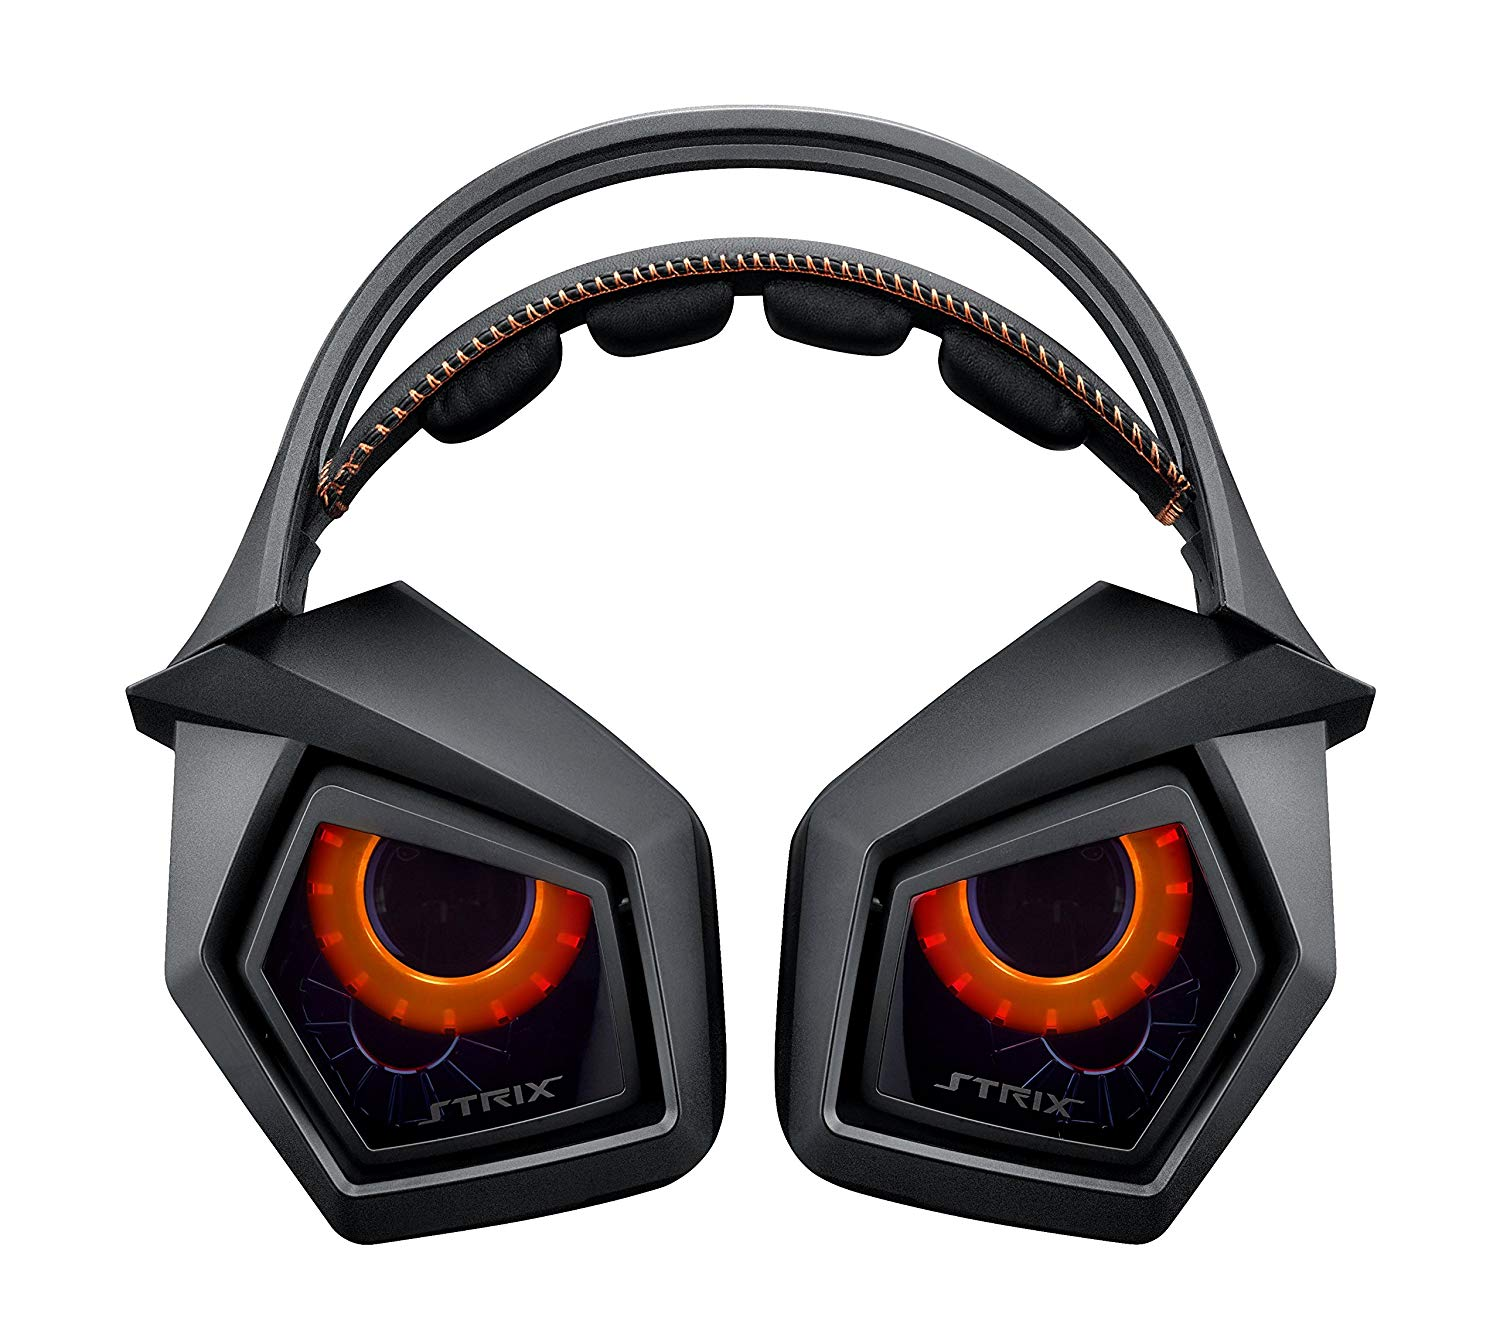 The Best 7.1 Gaming Headsets (Reviewed December 2019) 6